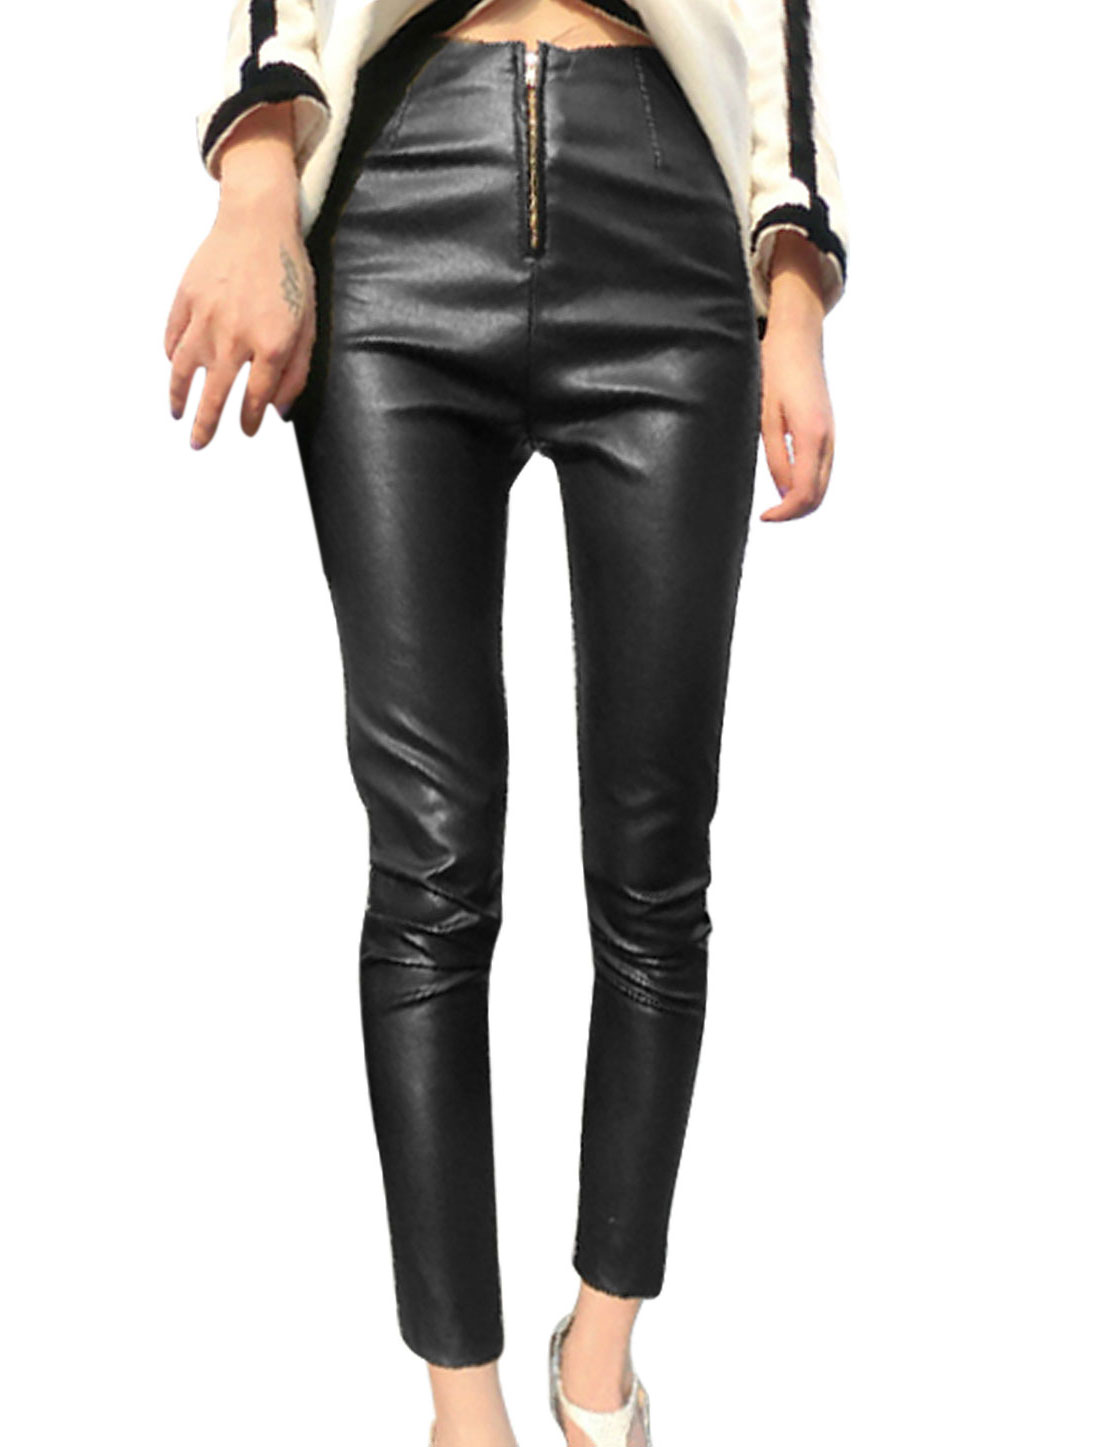 Women Zip Fly Double Hip Pockets Imitation Leather Cropped Pants Black XS